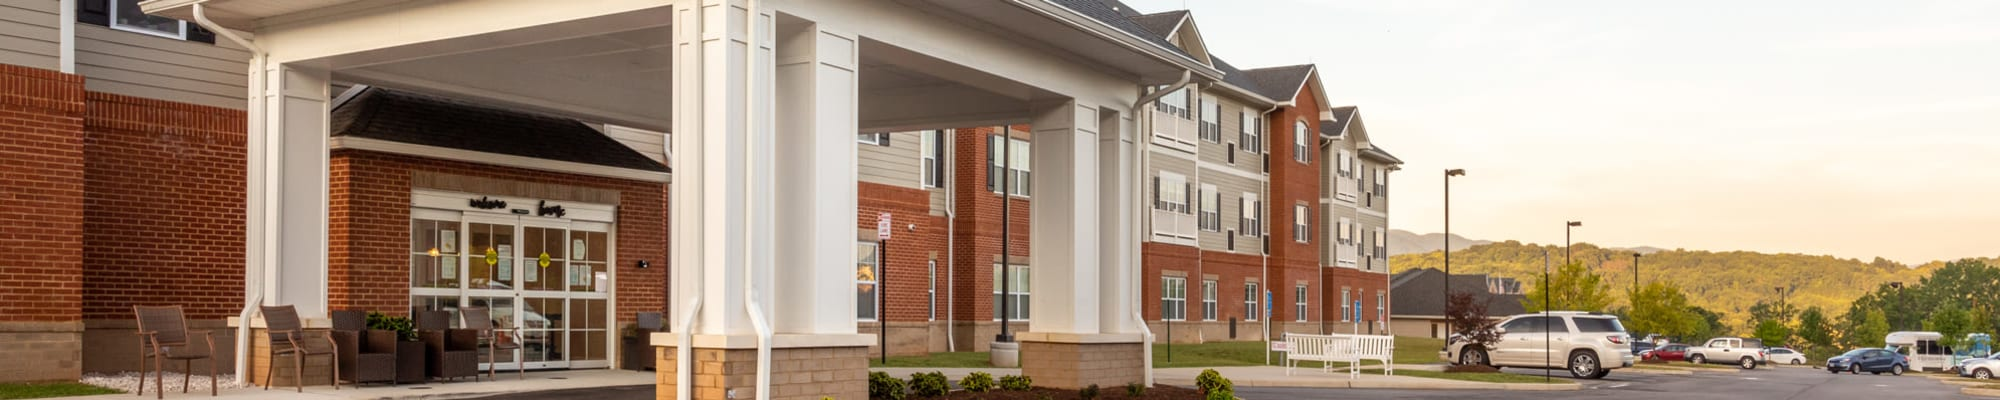 Map & Directions to The Harmony Collection at Roanoke - Assisted Living in Roanoke, Virginia